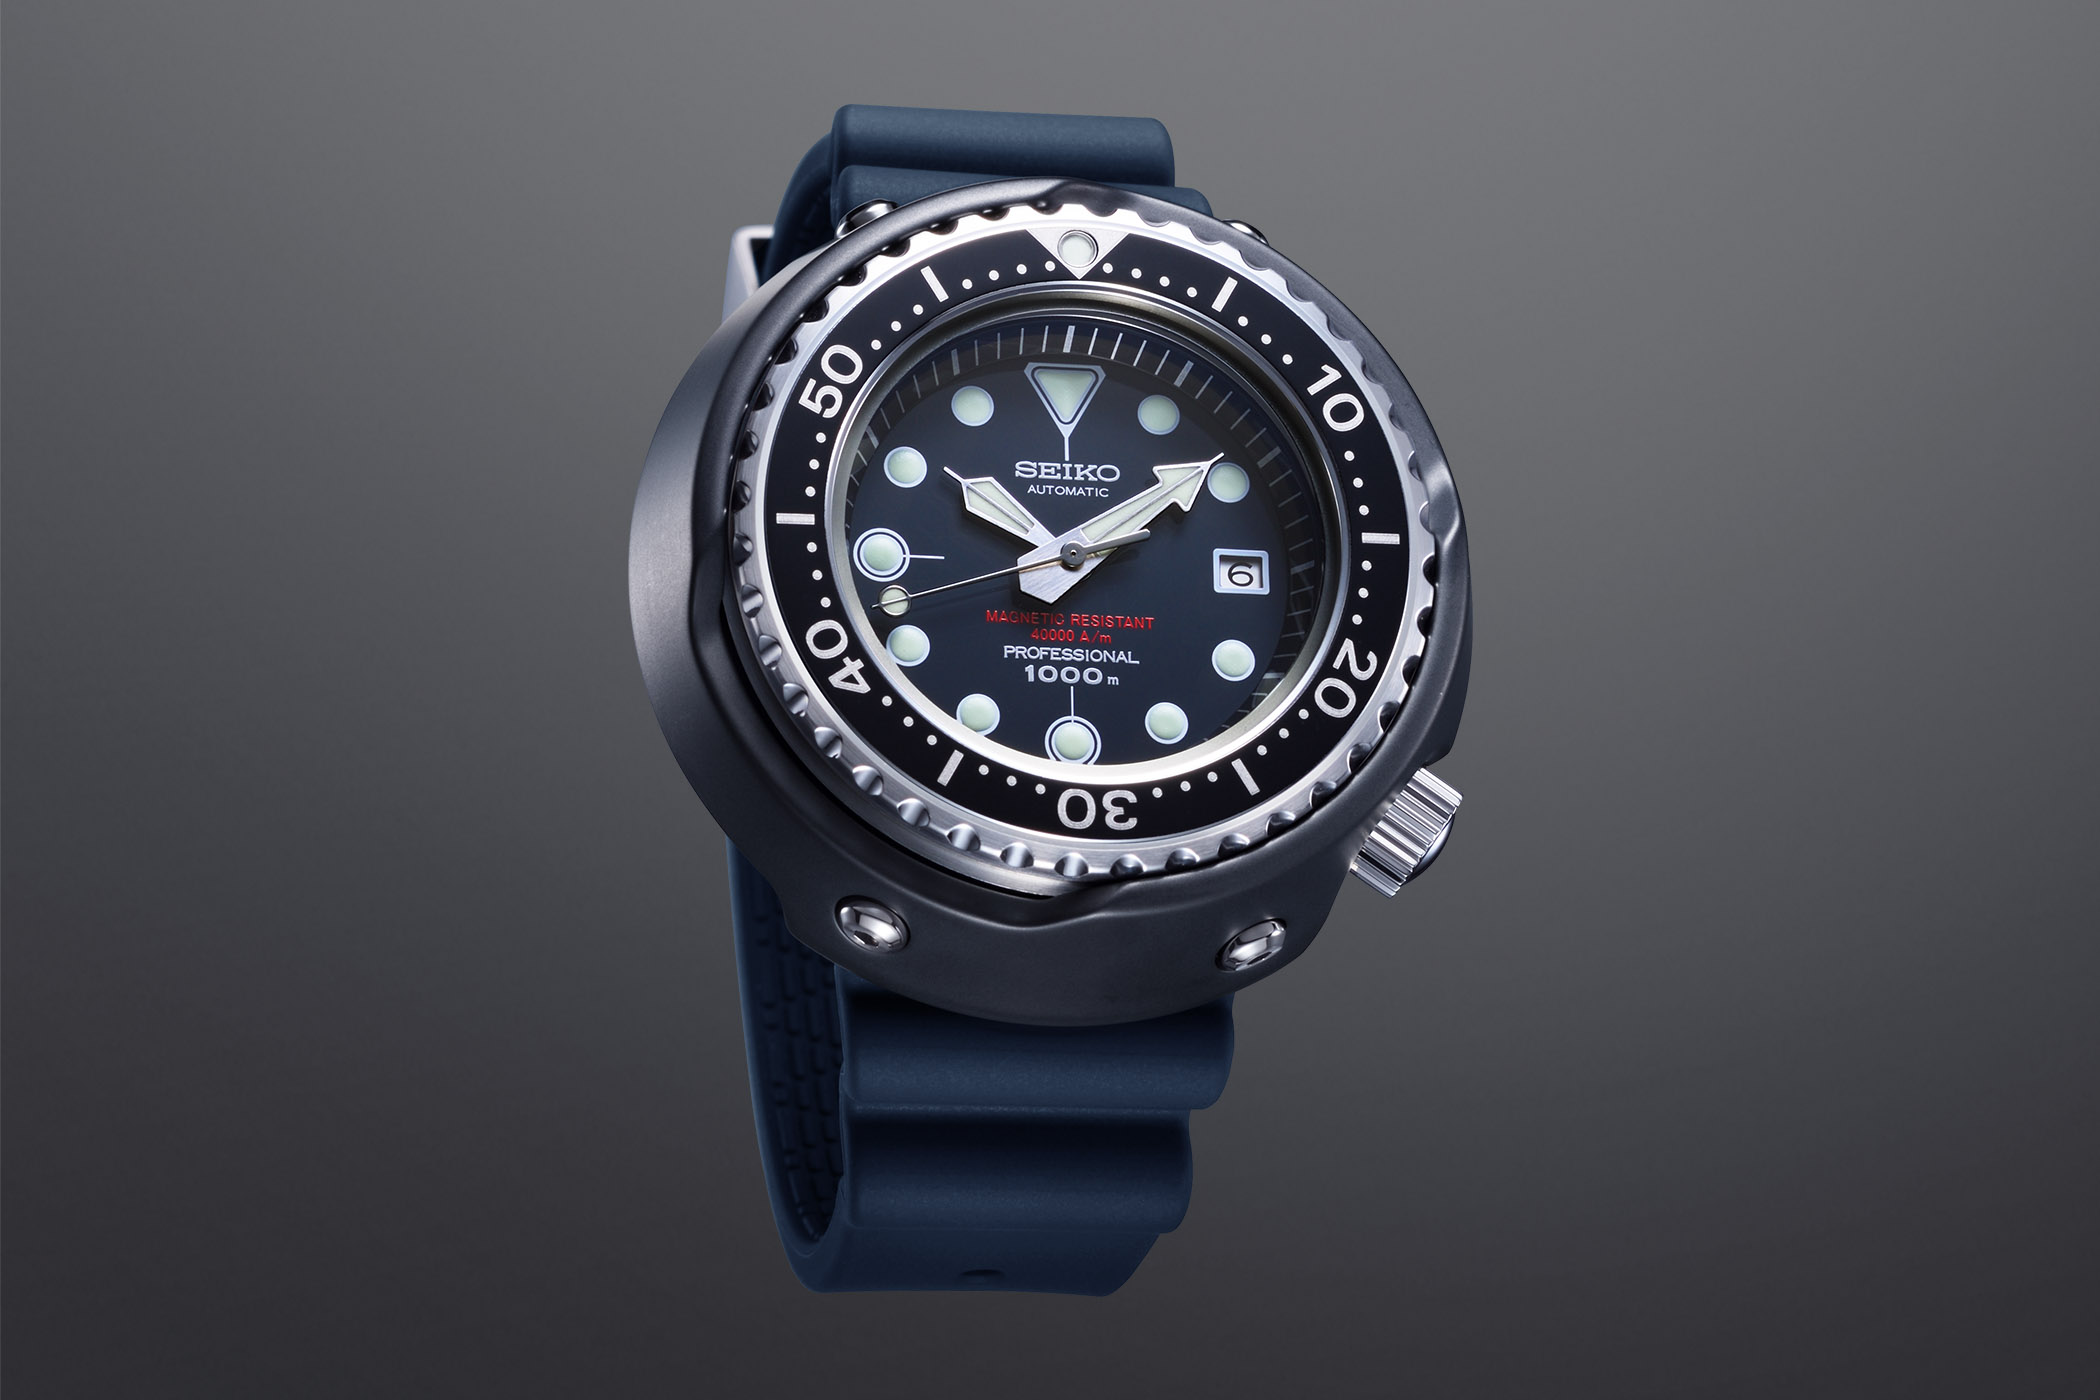 Seiko's new Diver's Watch 55th Anniversary L.E.'s Seiko-Prospex-Diver-55th-Anniversary-Re-Edition-1975-Tuna-600m-Diver-SLA041-1